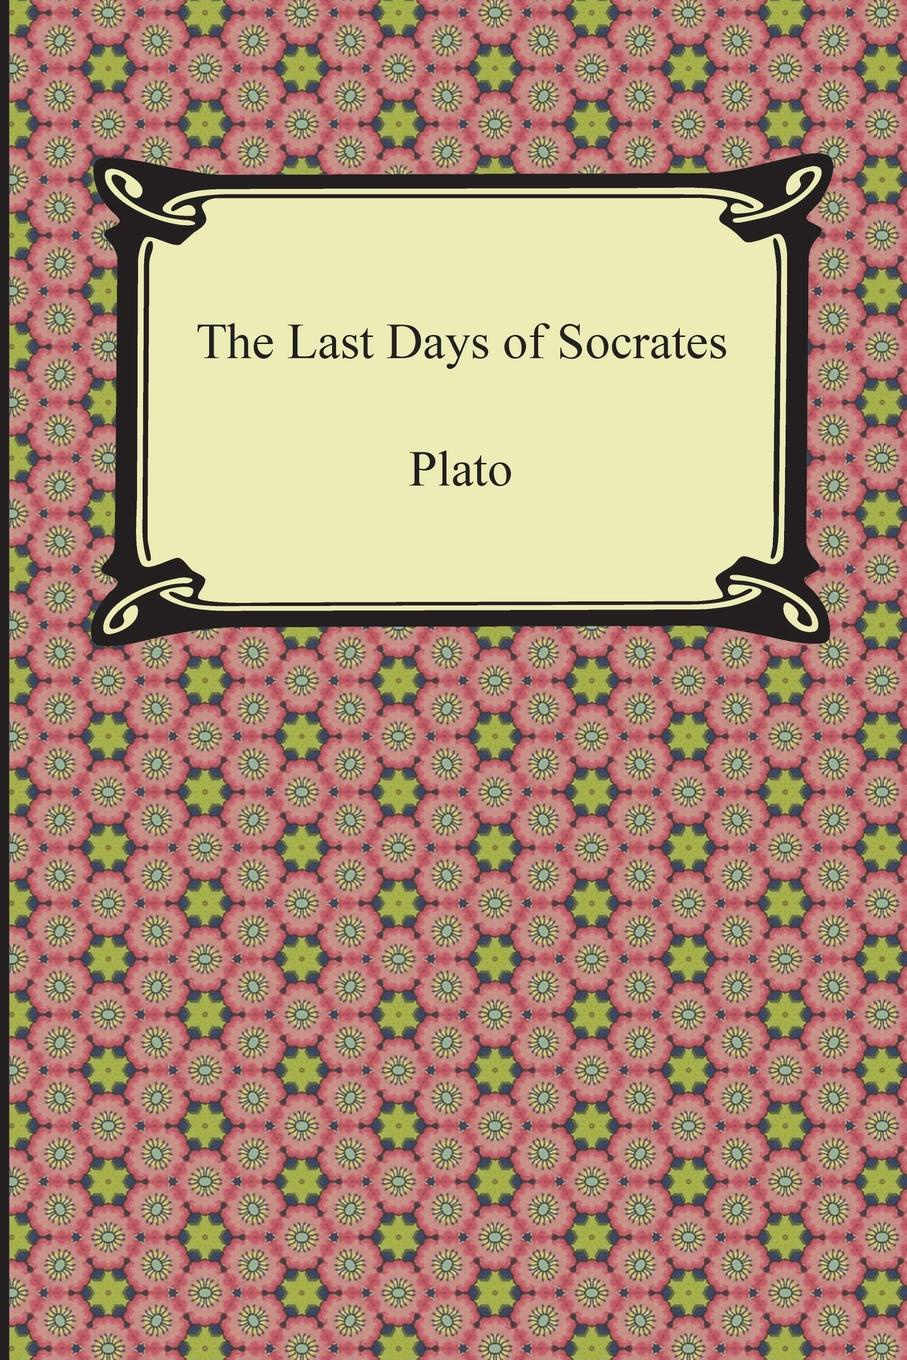 Plato, Benjamin Jowett The Last Days of Socrates (Euthyphro, The Apology, Crito, Phaedo) xenophon the memorable thoughts of socrates